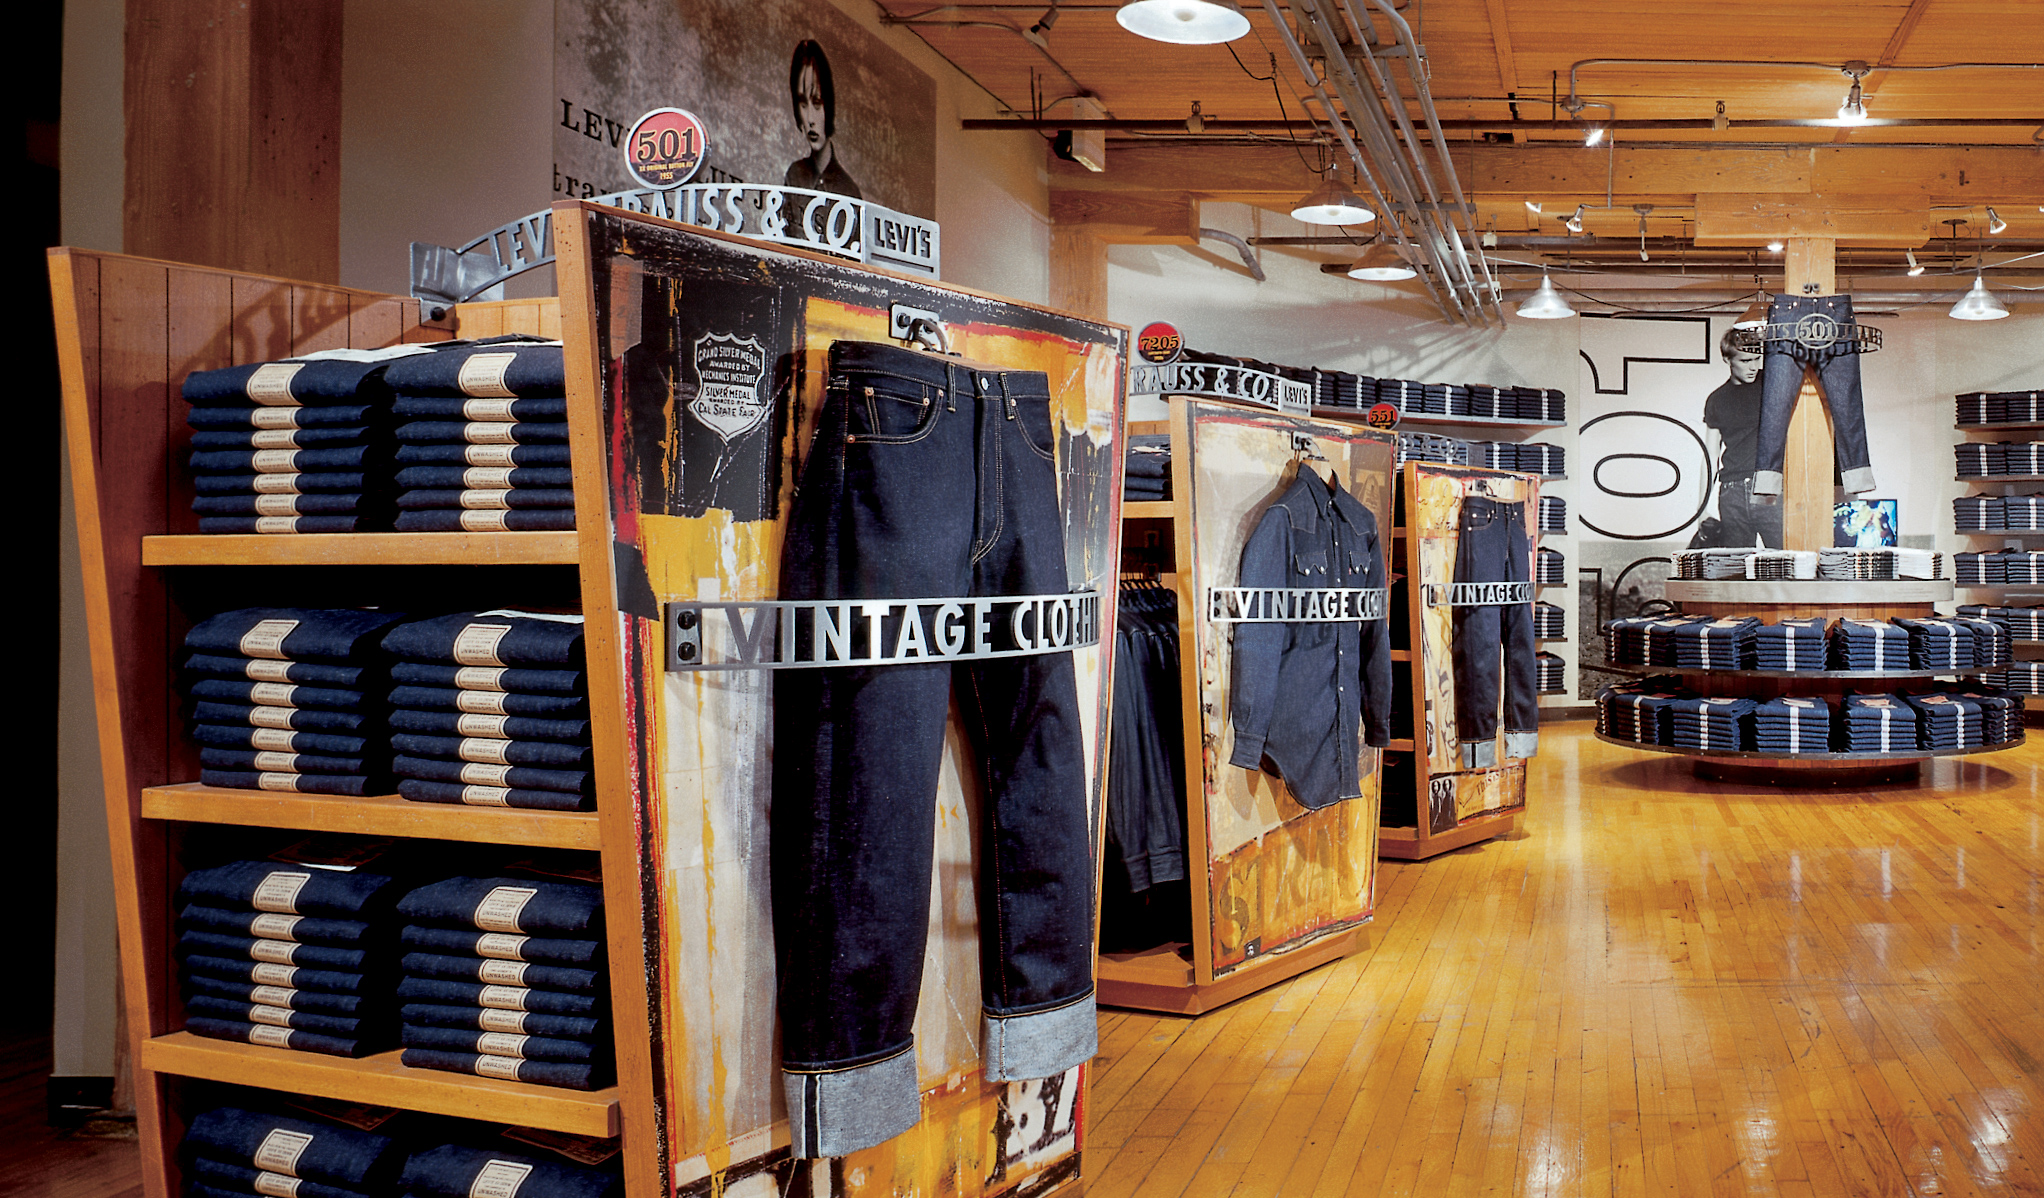 Levis vintage store displaying pieces of denim clothing